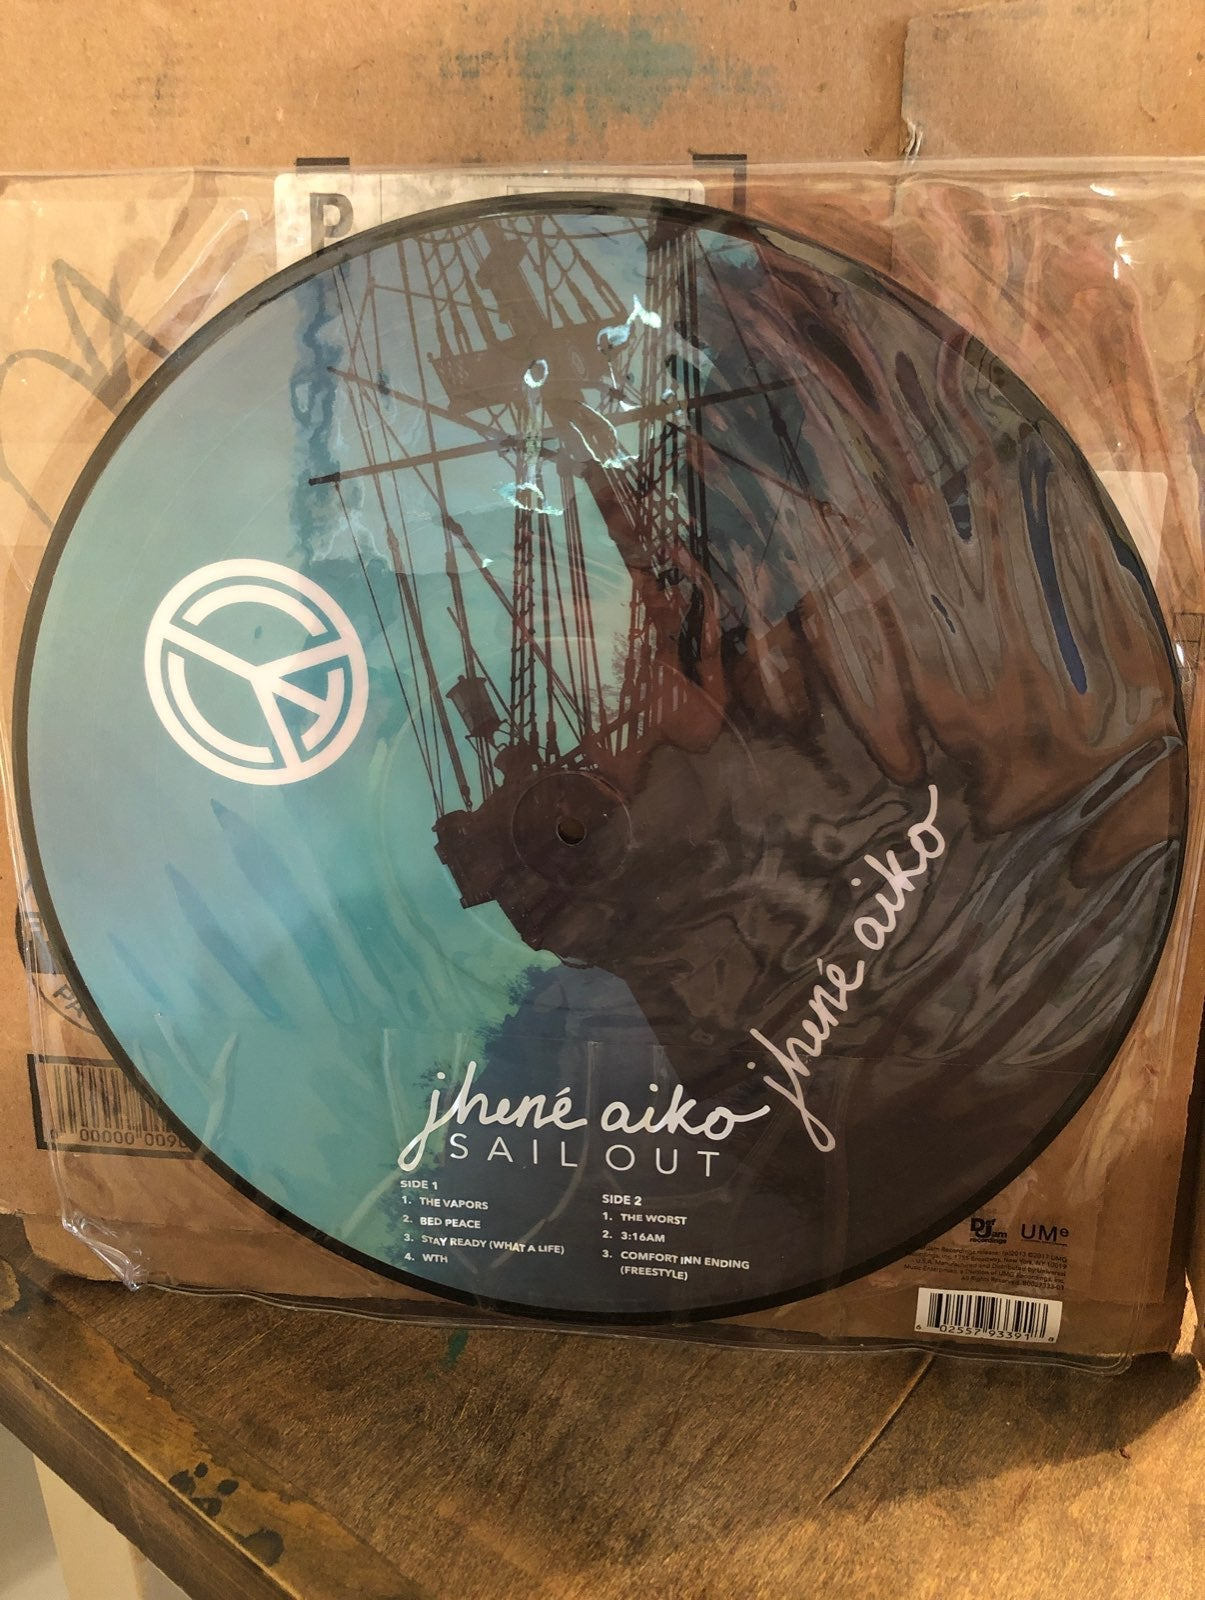 **On hold**Jhene Aiko - Sail Out - Vinyl